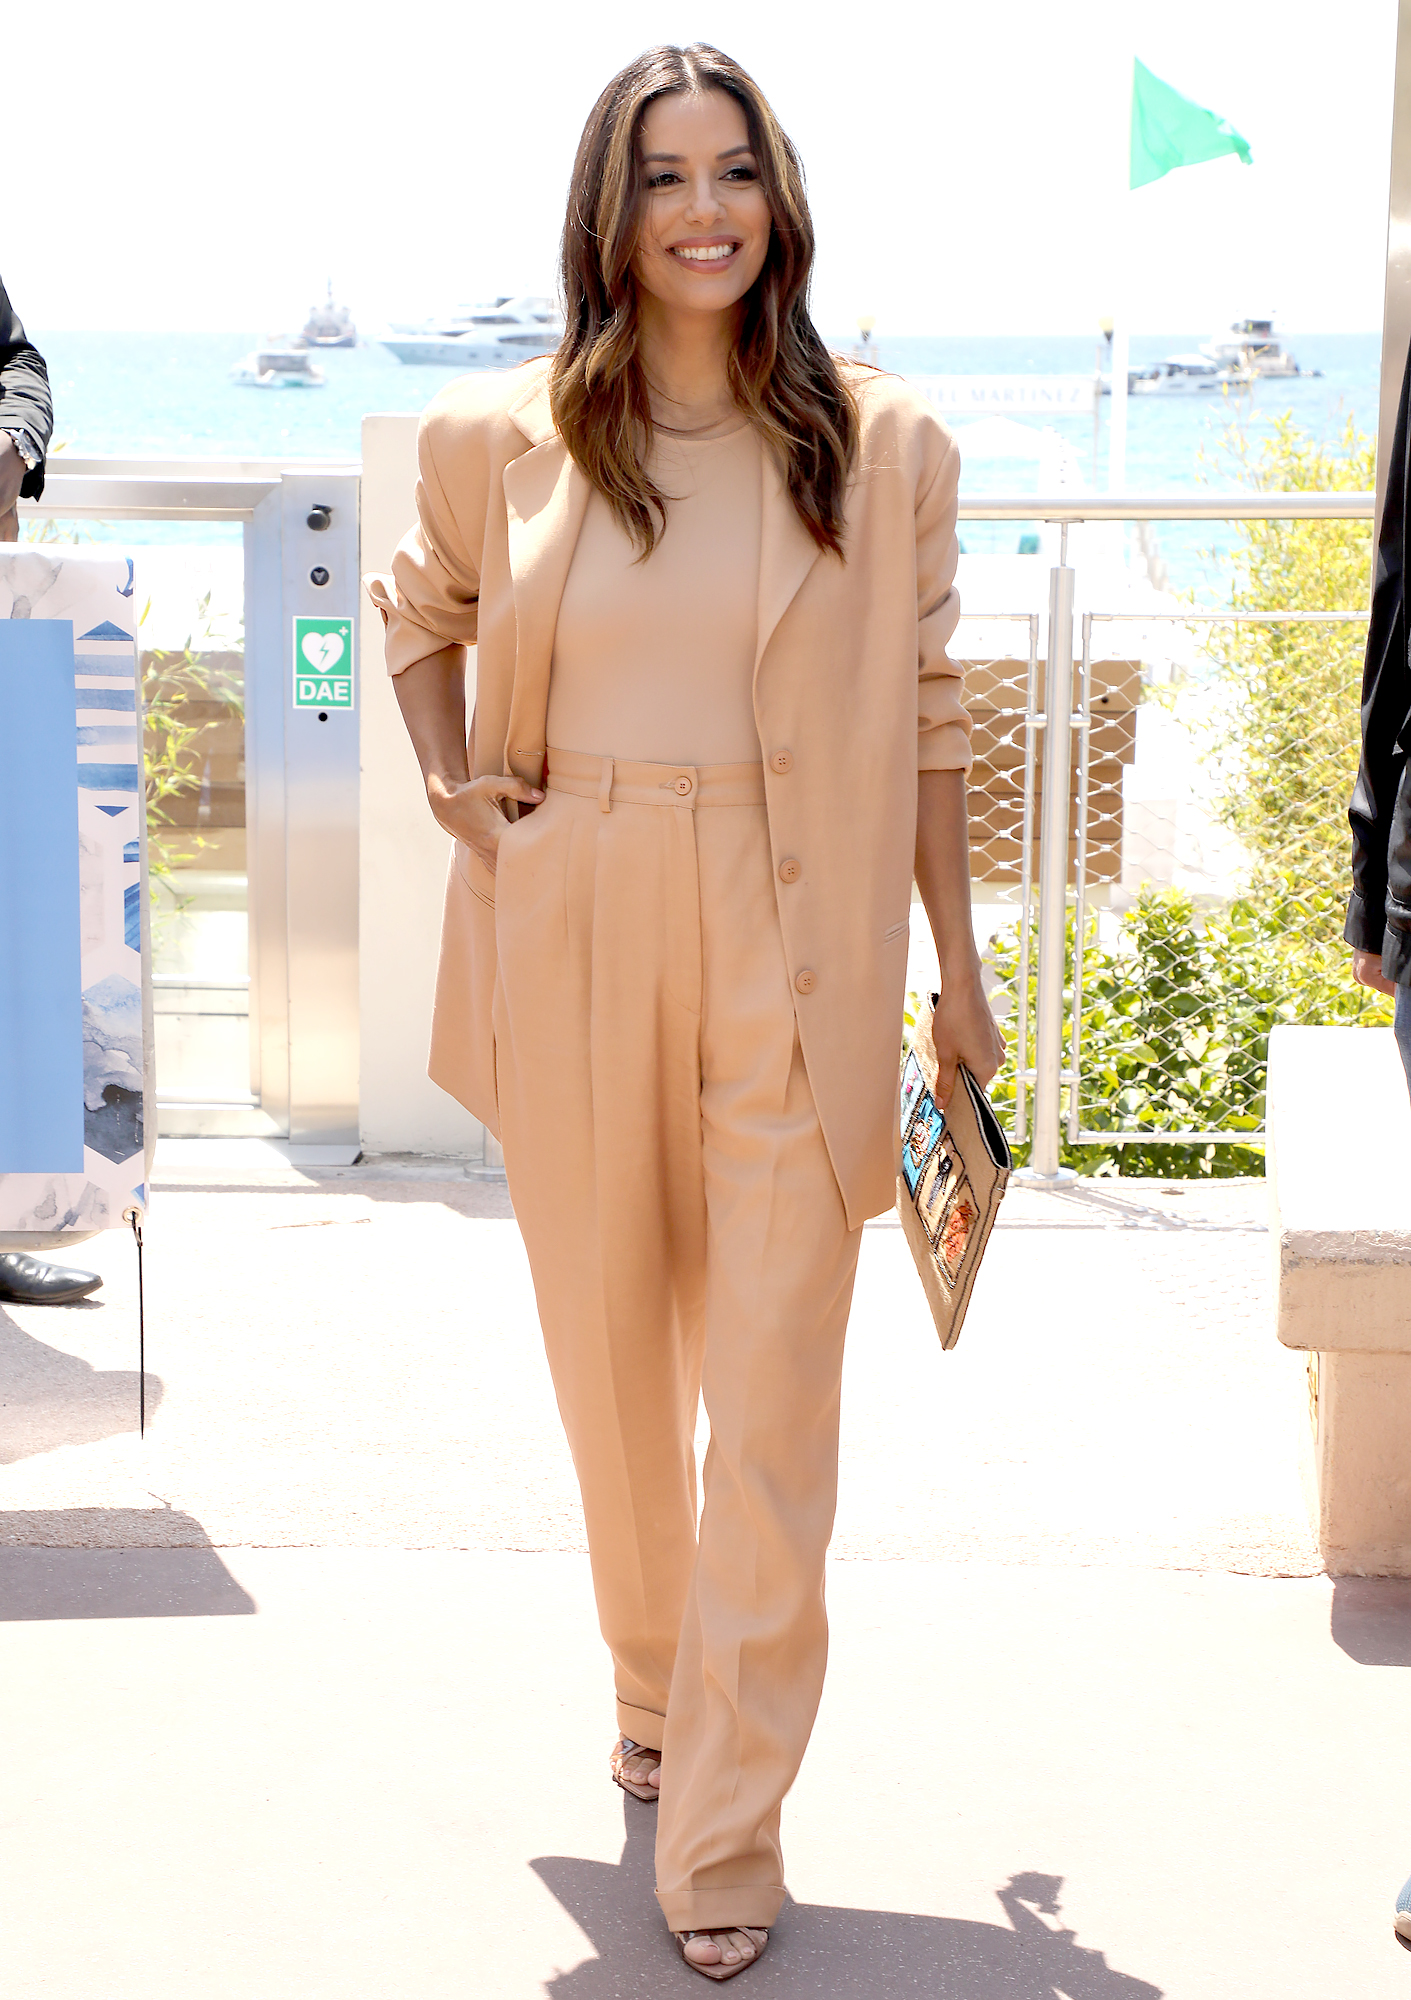 Eva-Longoria-Cannes-Festival - The L'Oreal ambassador rocked a boss-lady Rebecca Vallance pantsuit with Gianvito Rossi sandals at an event for the brand on Thursday, May 16.